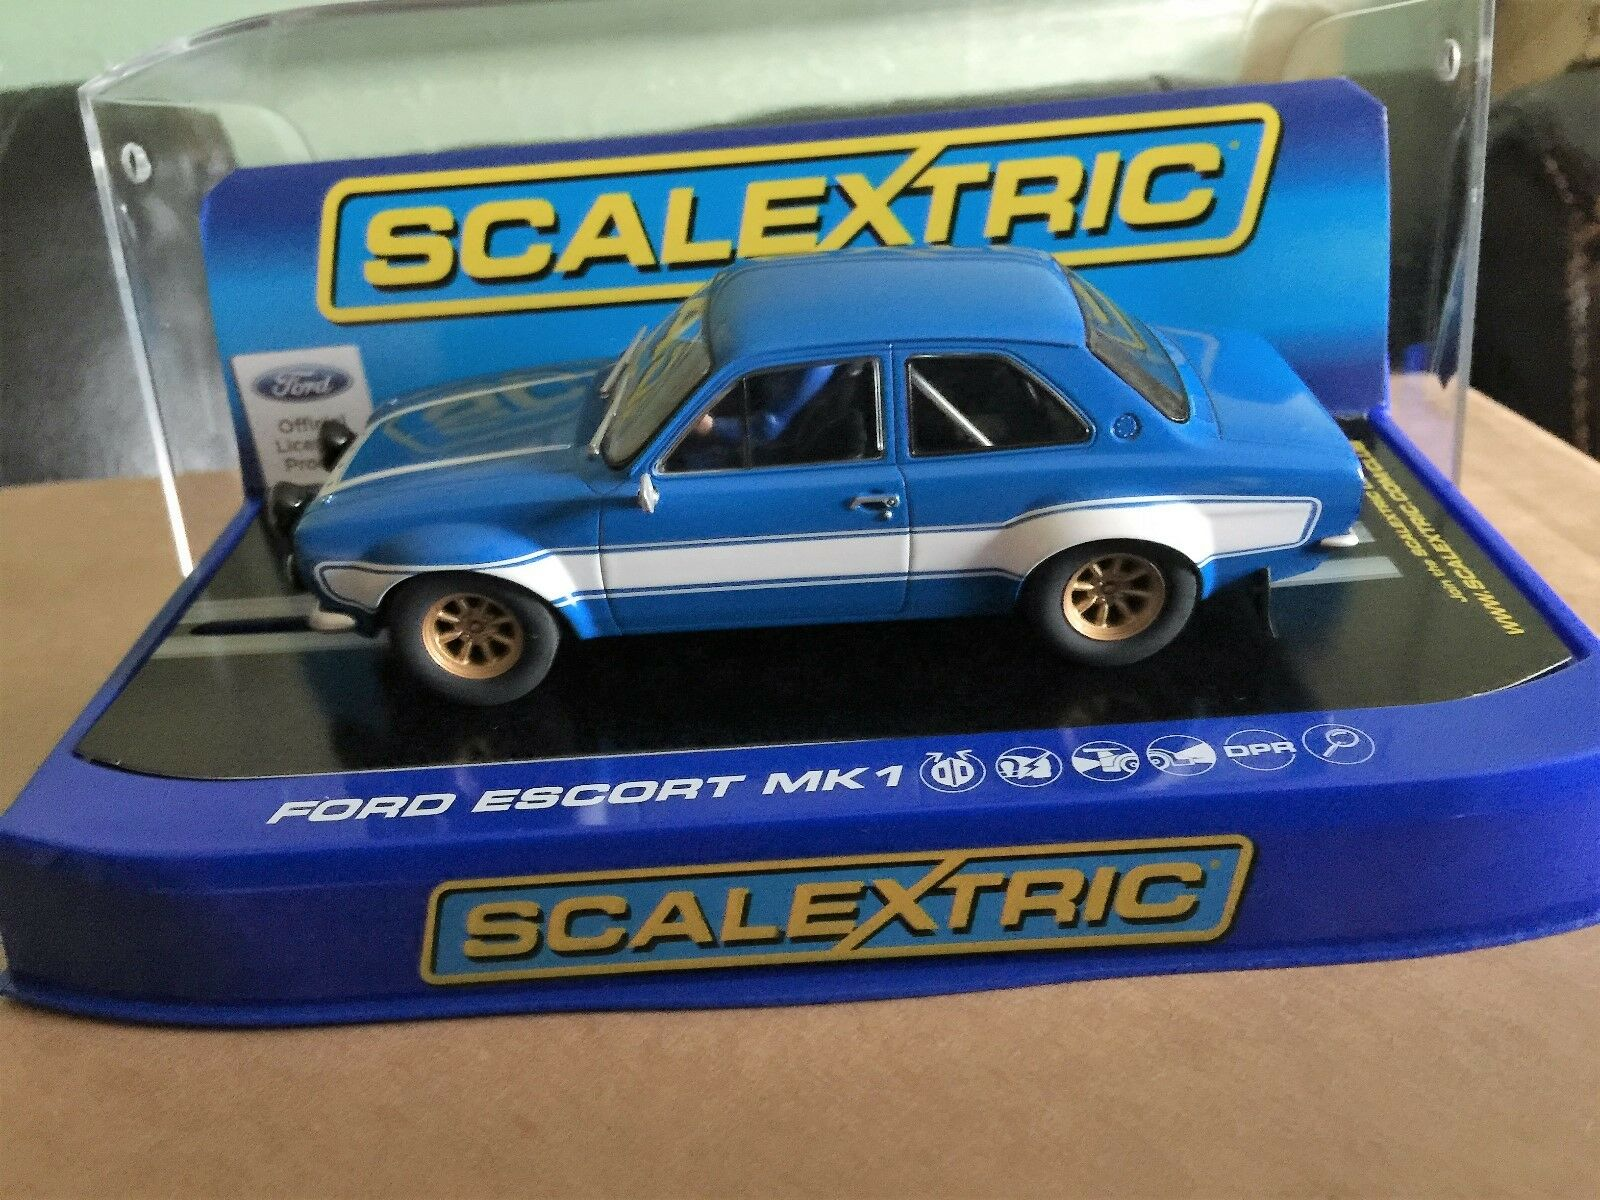 Scalextric Ford Escort Mk1  bluee & White C3592 MB DPR fast& furious